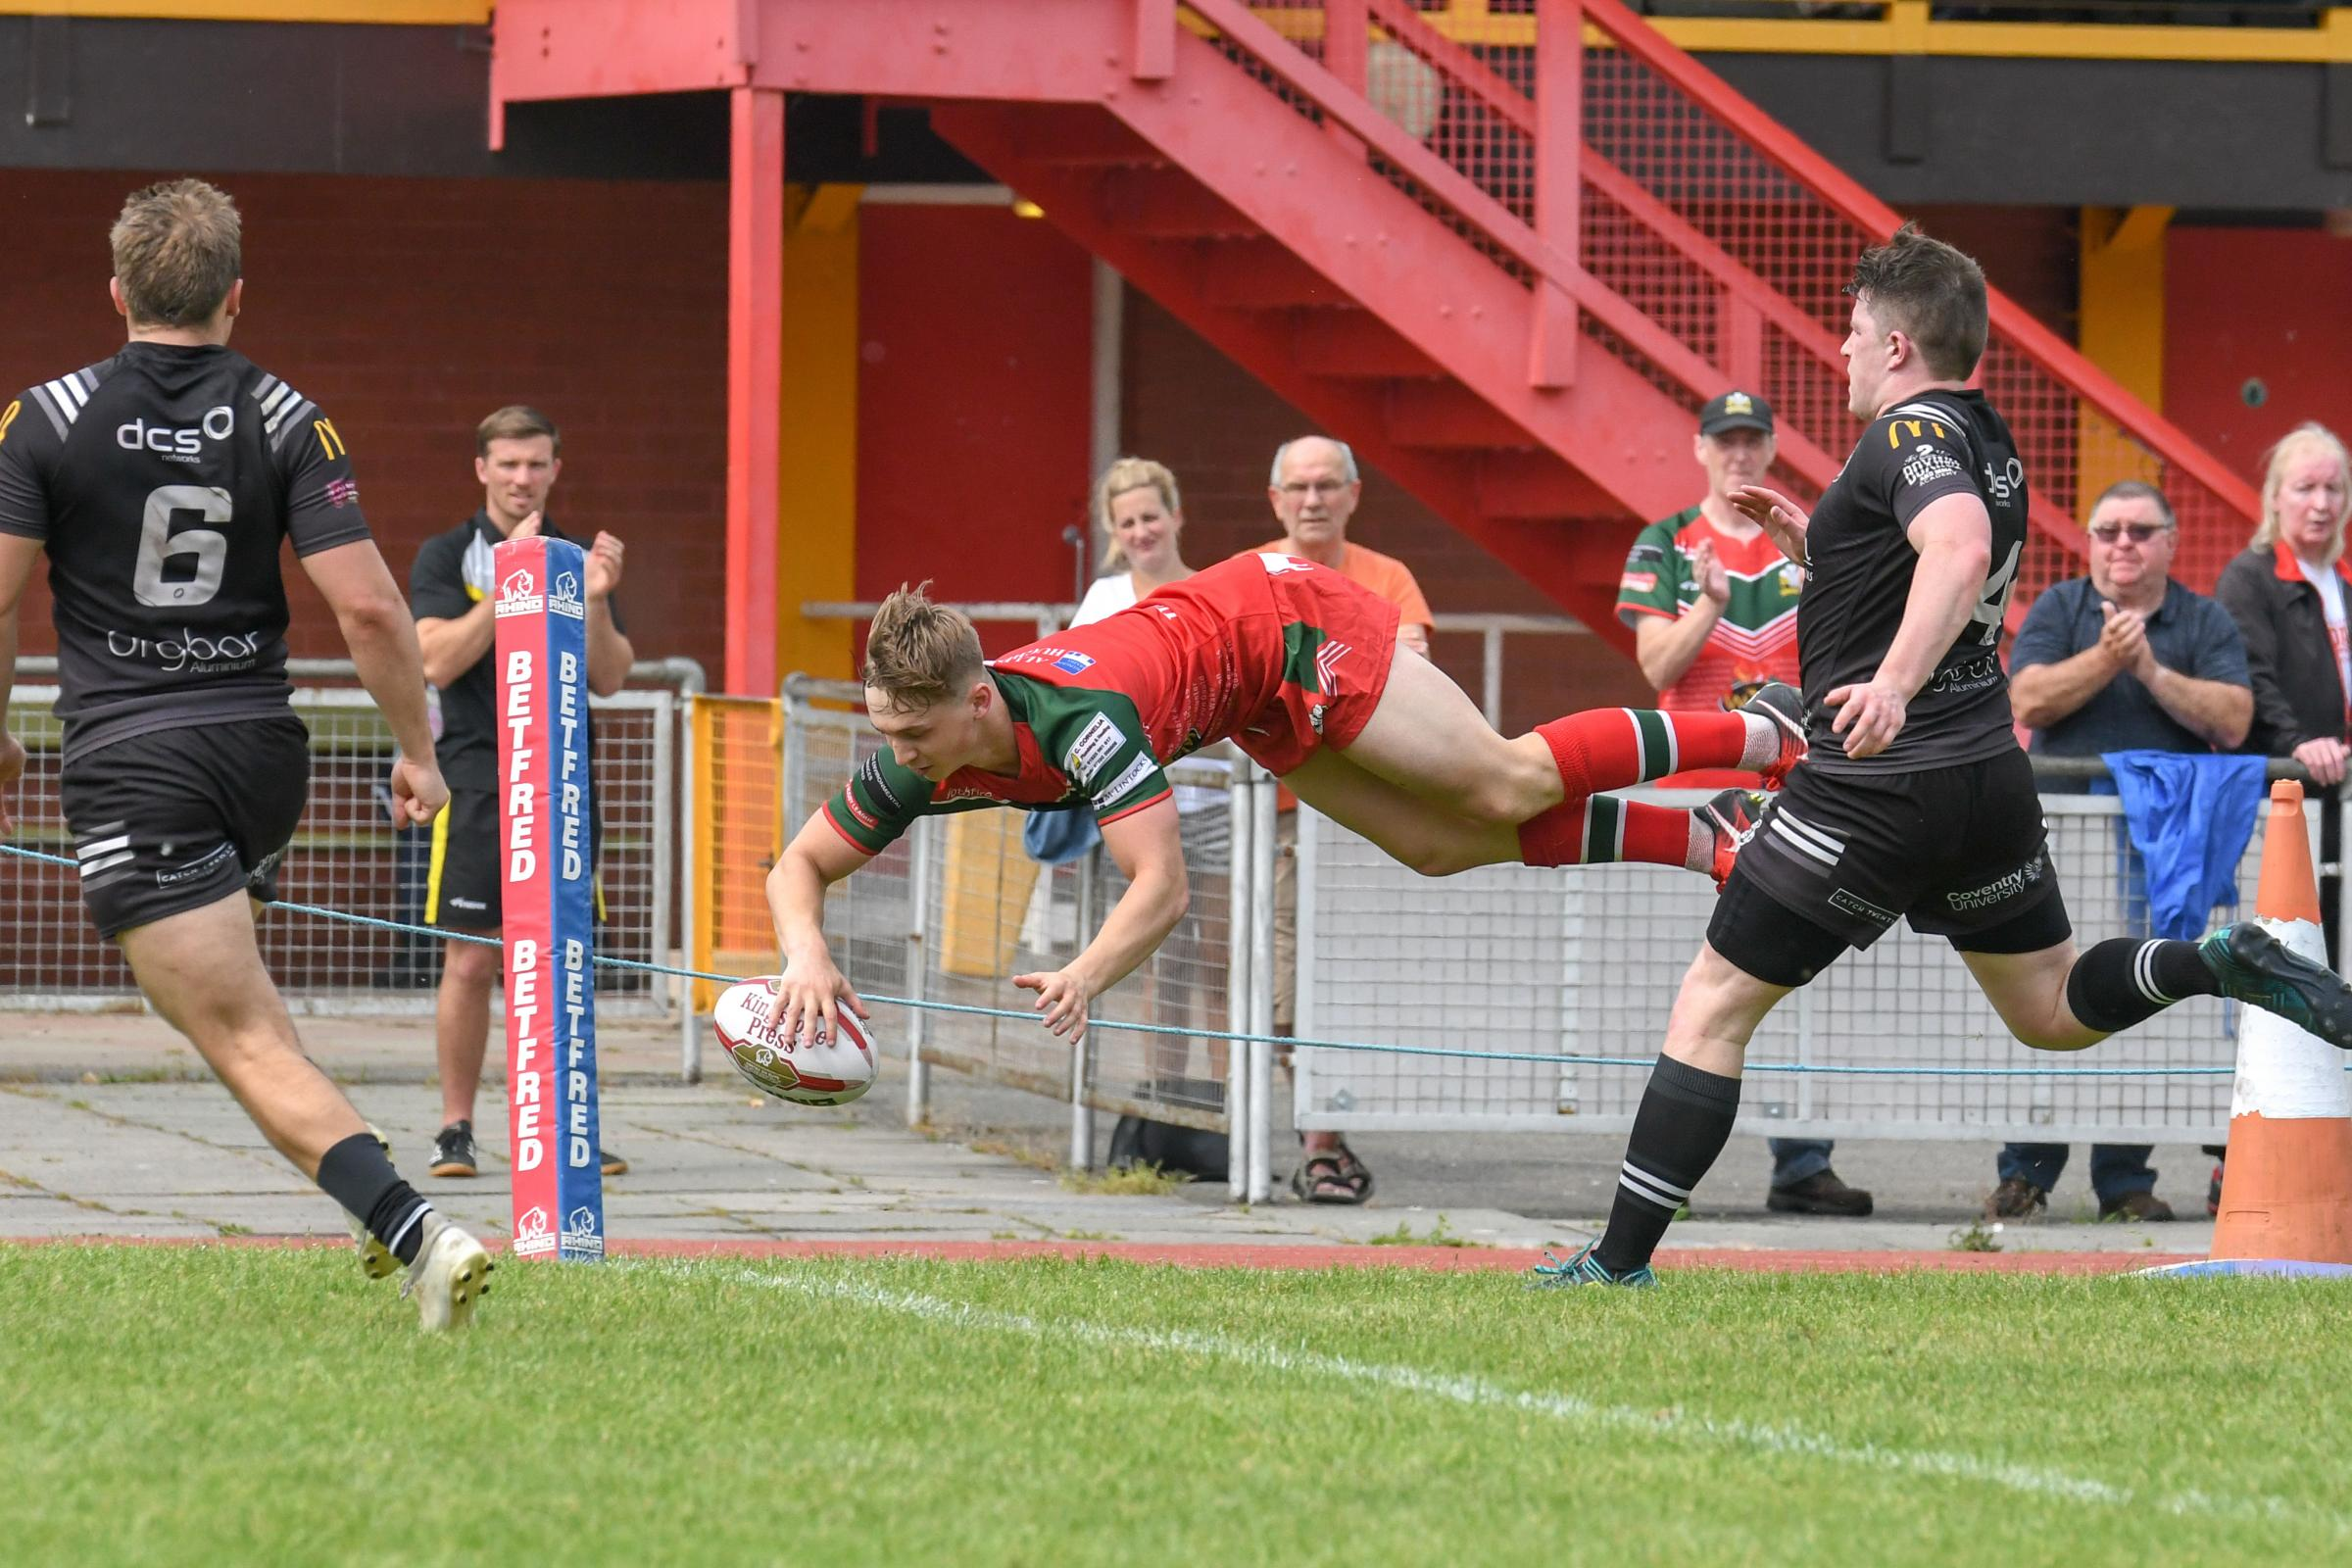 Action from North Wales Crusaders v Coventry Bears